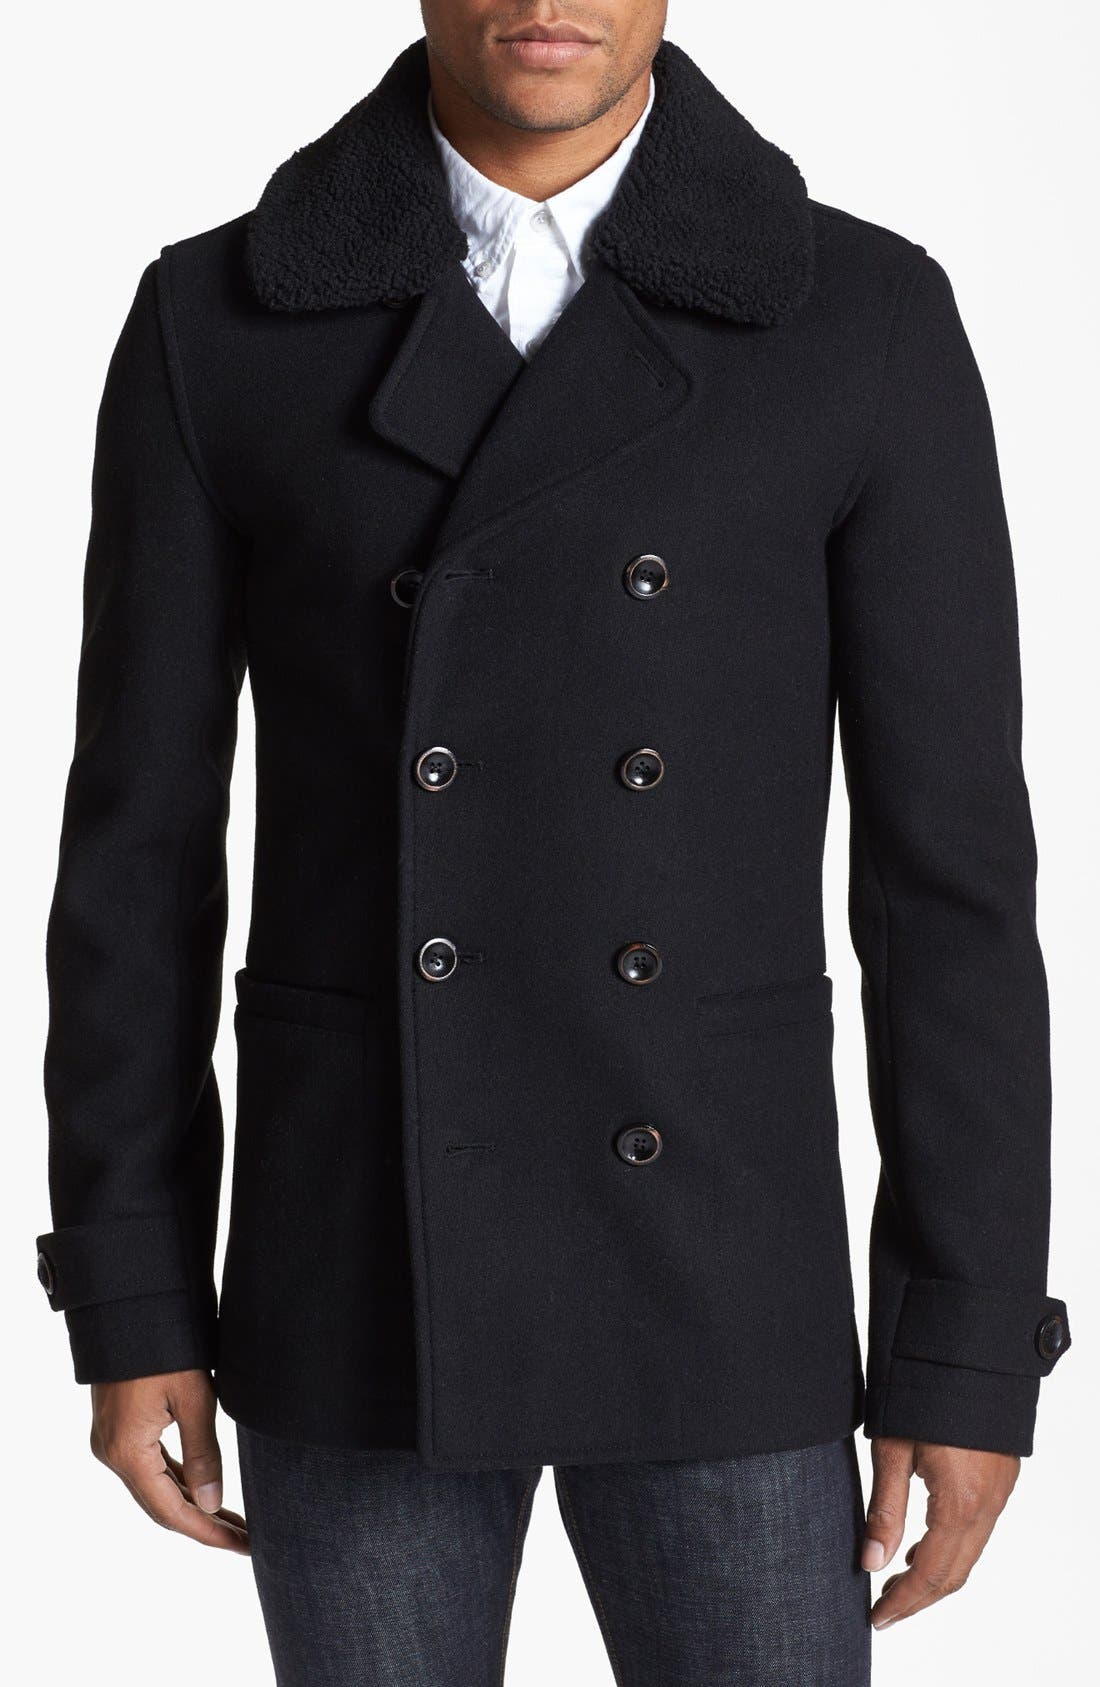 Skinny Fit Double Breasted Peacoat,                             Main thumbnail 1, color,                             Black